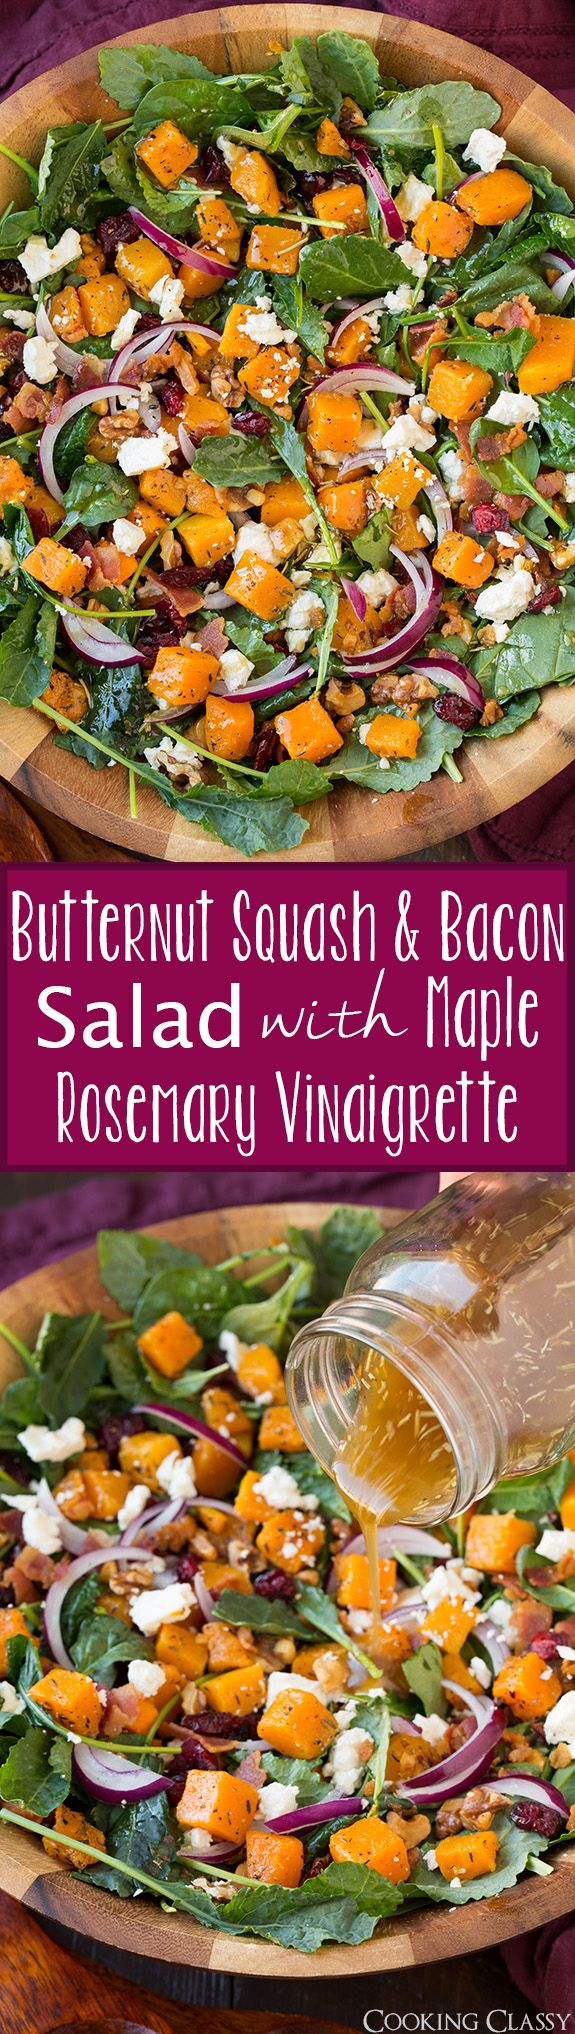 Butternut Squash and Bacon Salad with Maple-Rosemary Vinaigrette - the perfect fall salad! Love all the flavors in this salad!